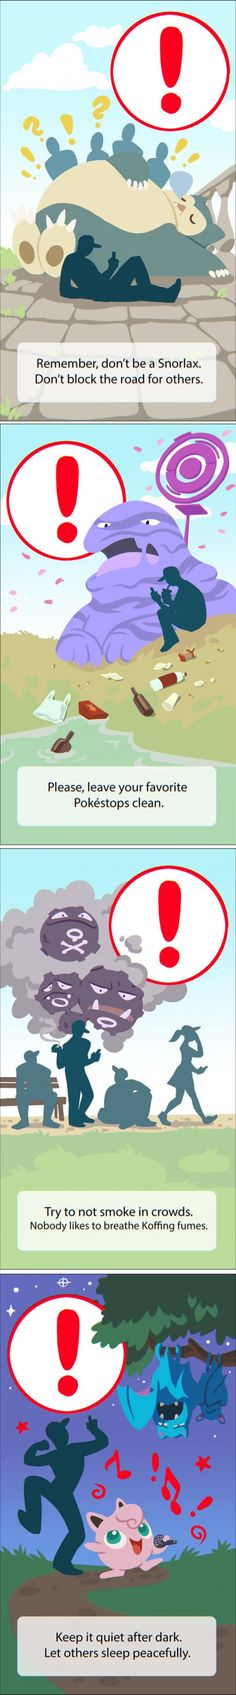 New Pokémon GO Warning Screens by Magdalena Proszowska